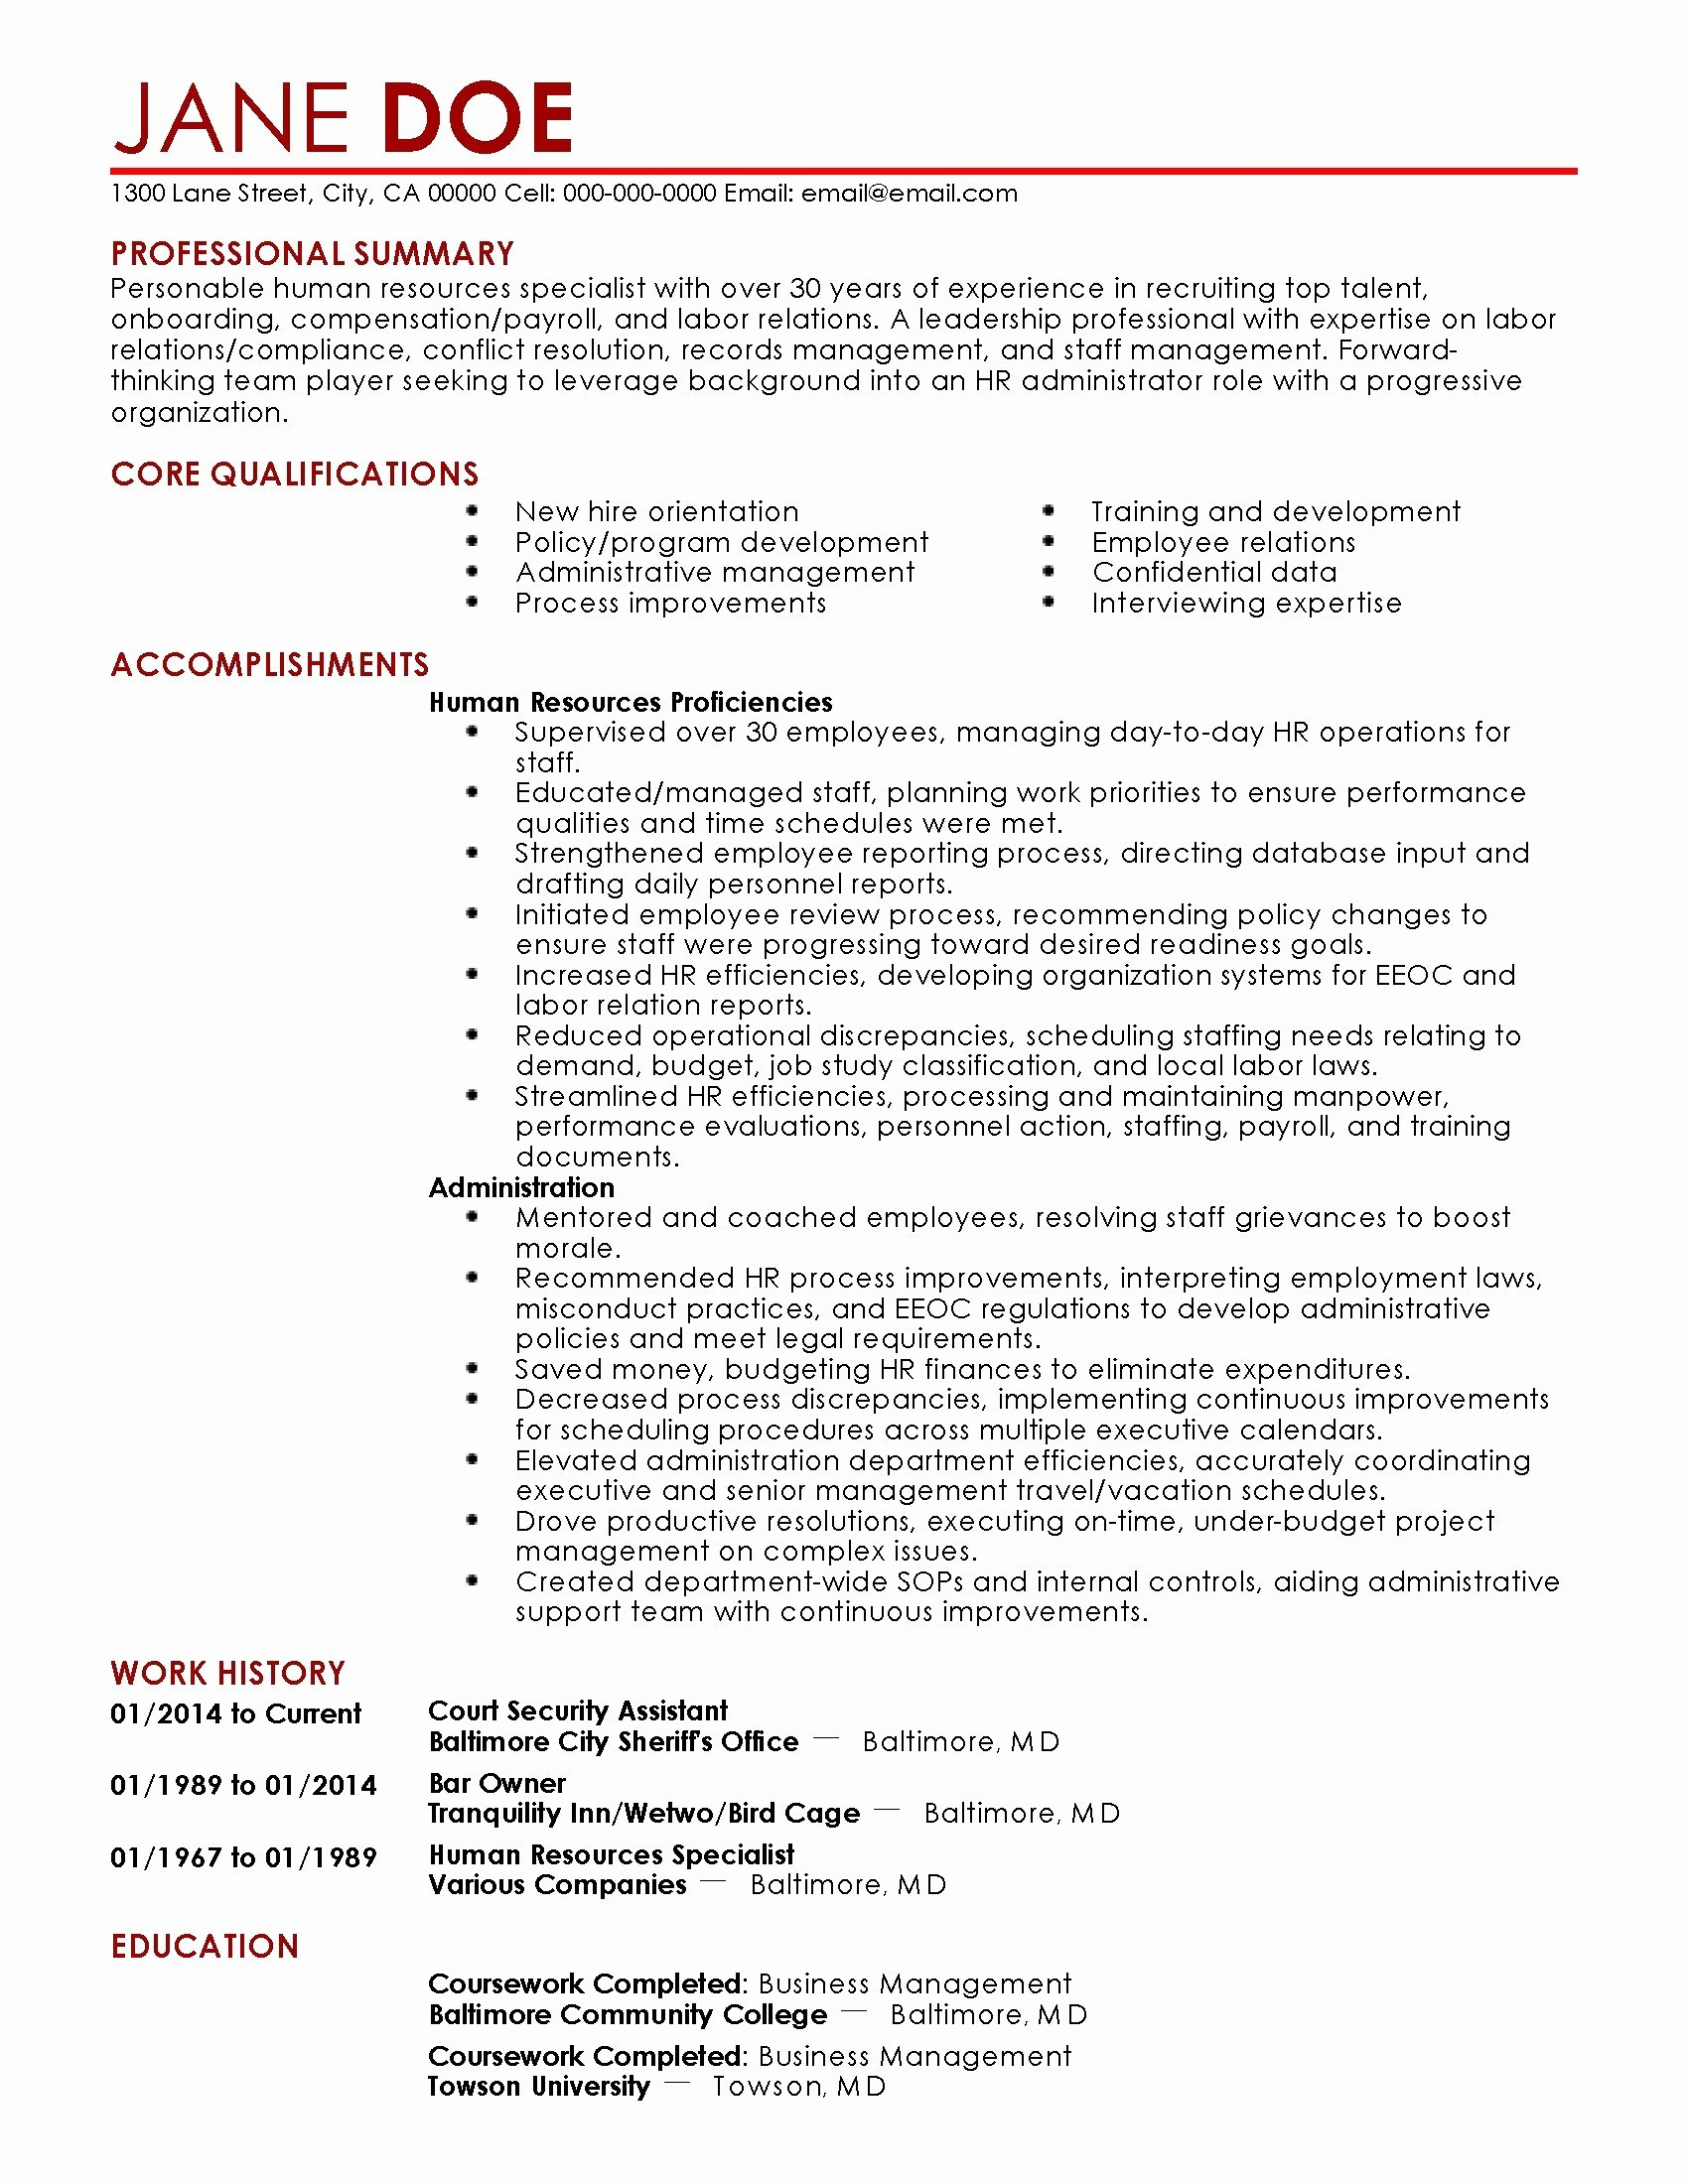 Medical Office Resume - Medical assistant Resumes Beautiful Example Resumes Elegant Cover